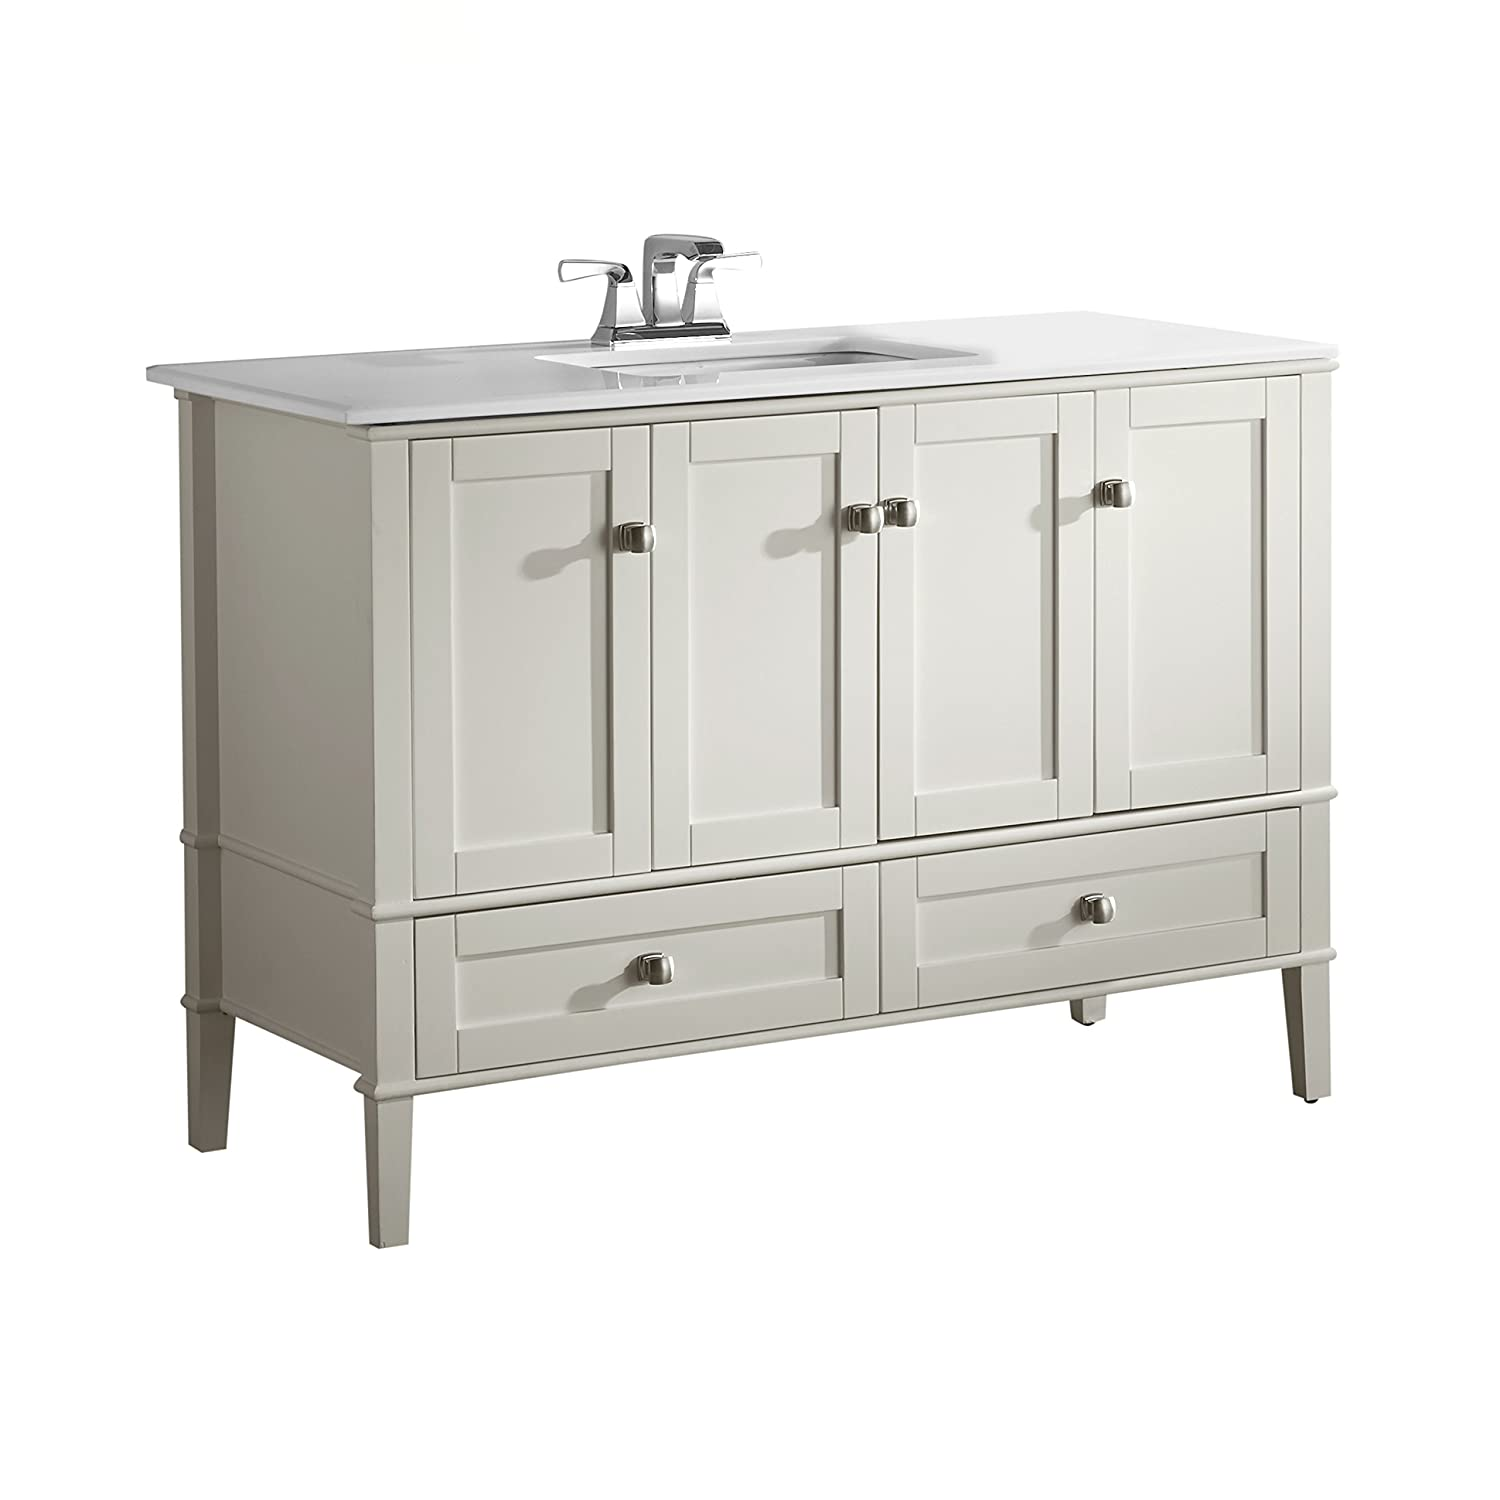 wmsq cabinet usa es bathtubs vanity plus virtu espresso in bathroom inch tiffany